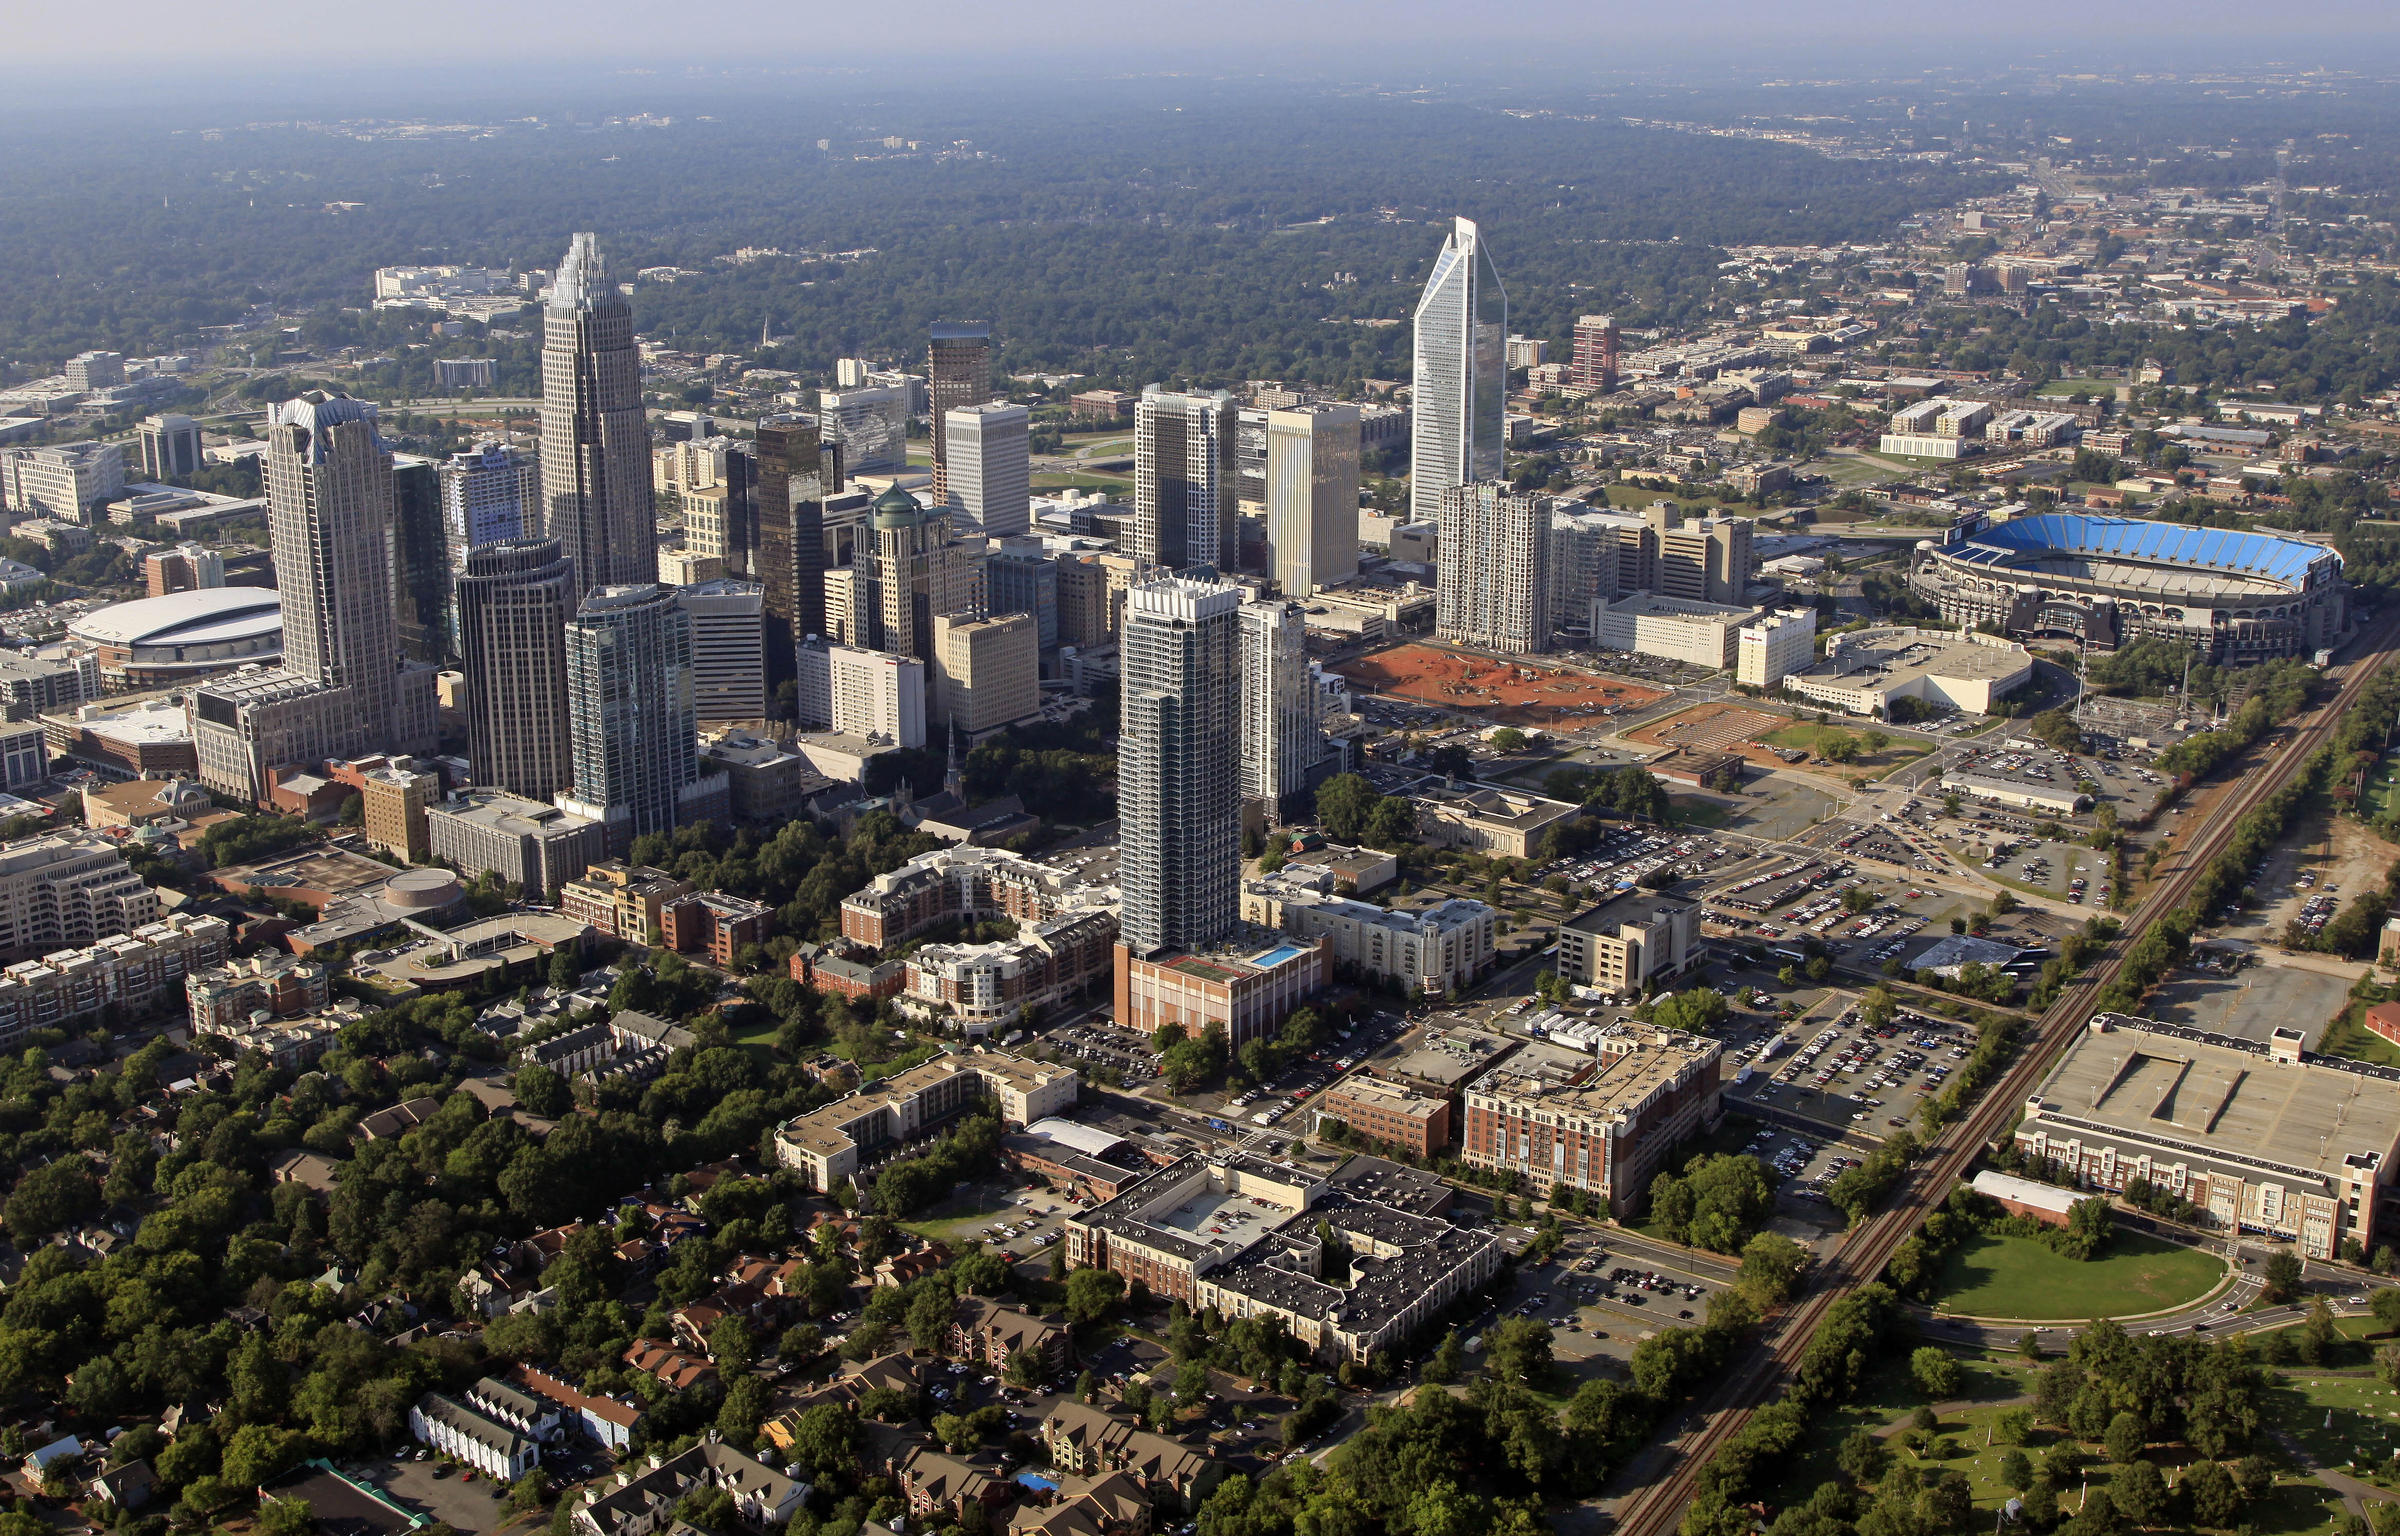 A Conversation On Inequality And Racial Disparities In Charlotte | WUNC